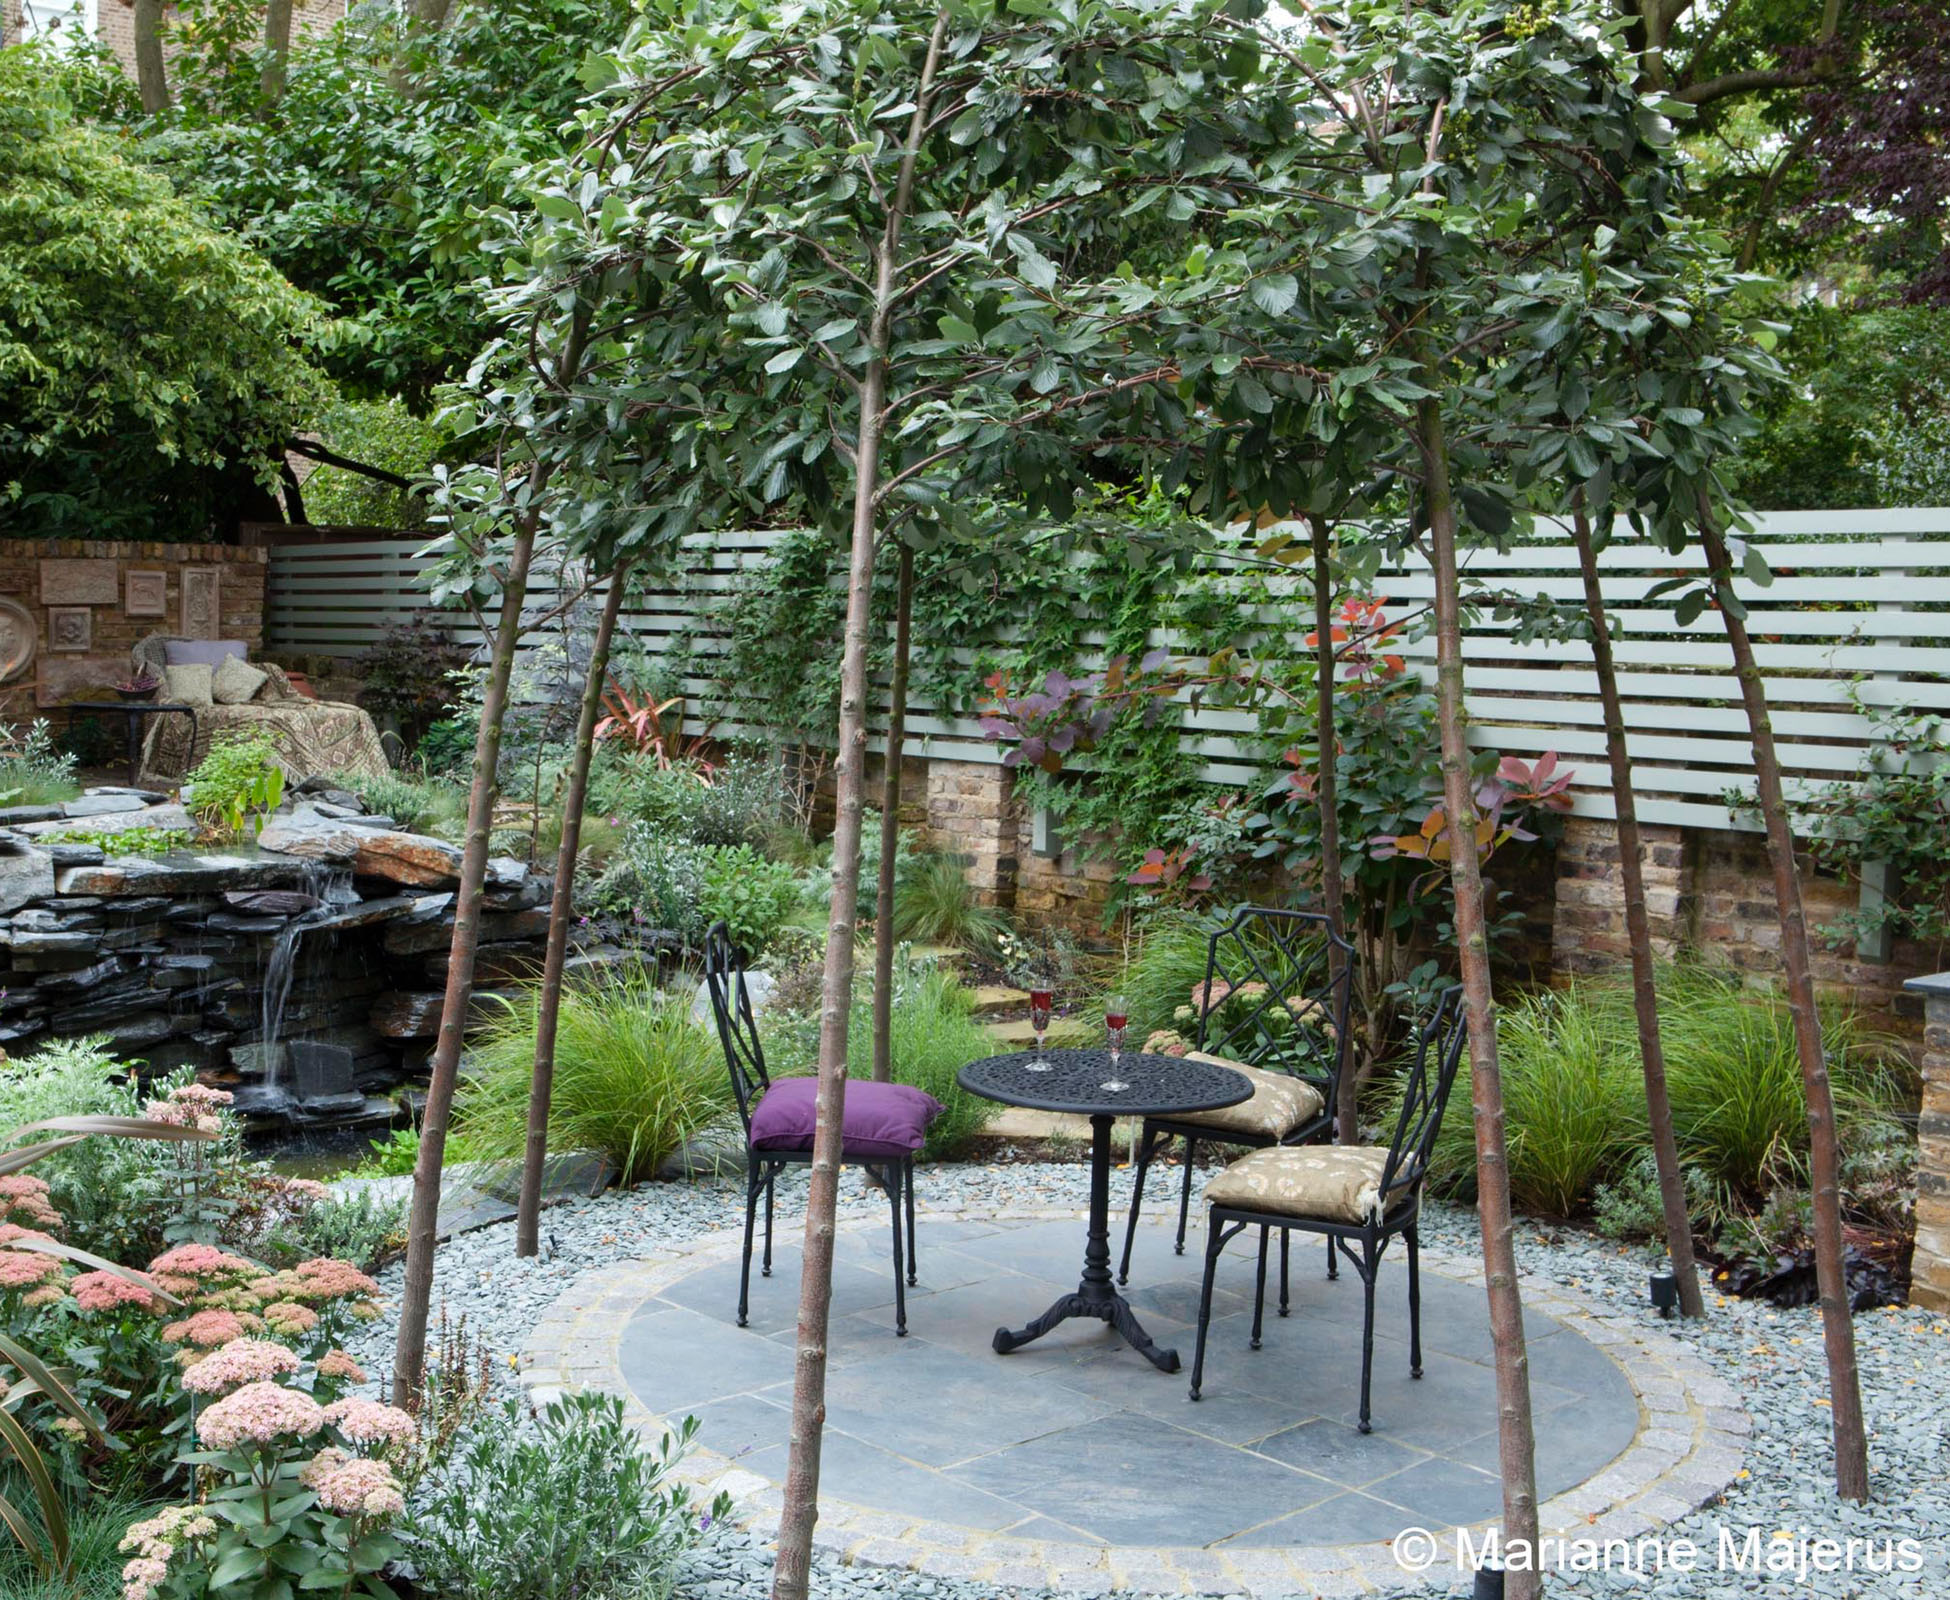 The trees have been trained to create a unusual canopy for the slate patio, that sits in front of the water feature.